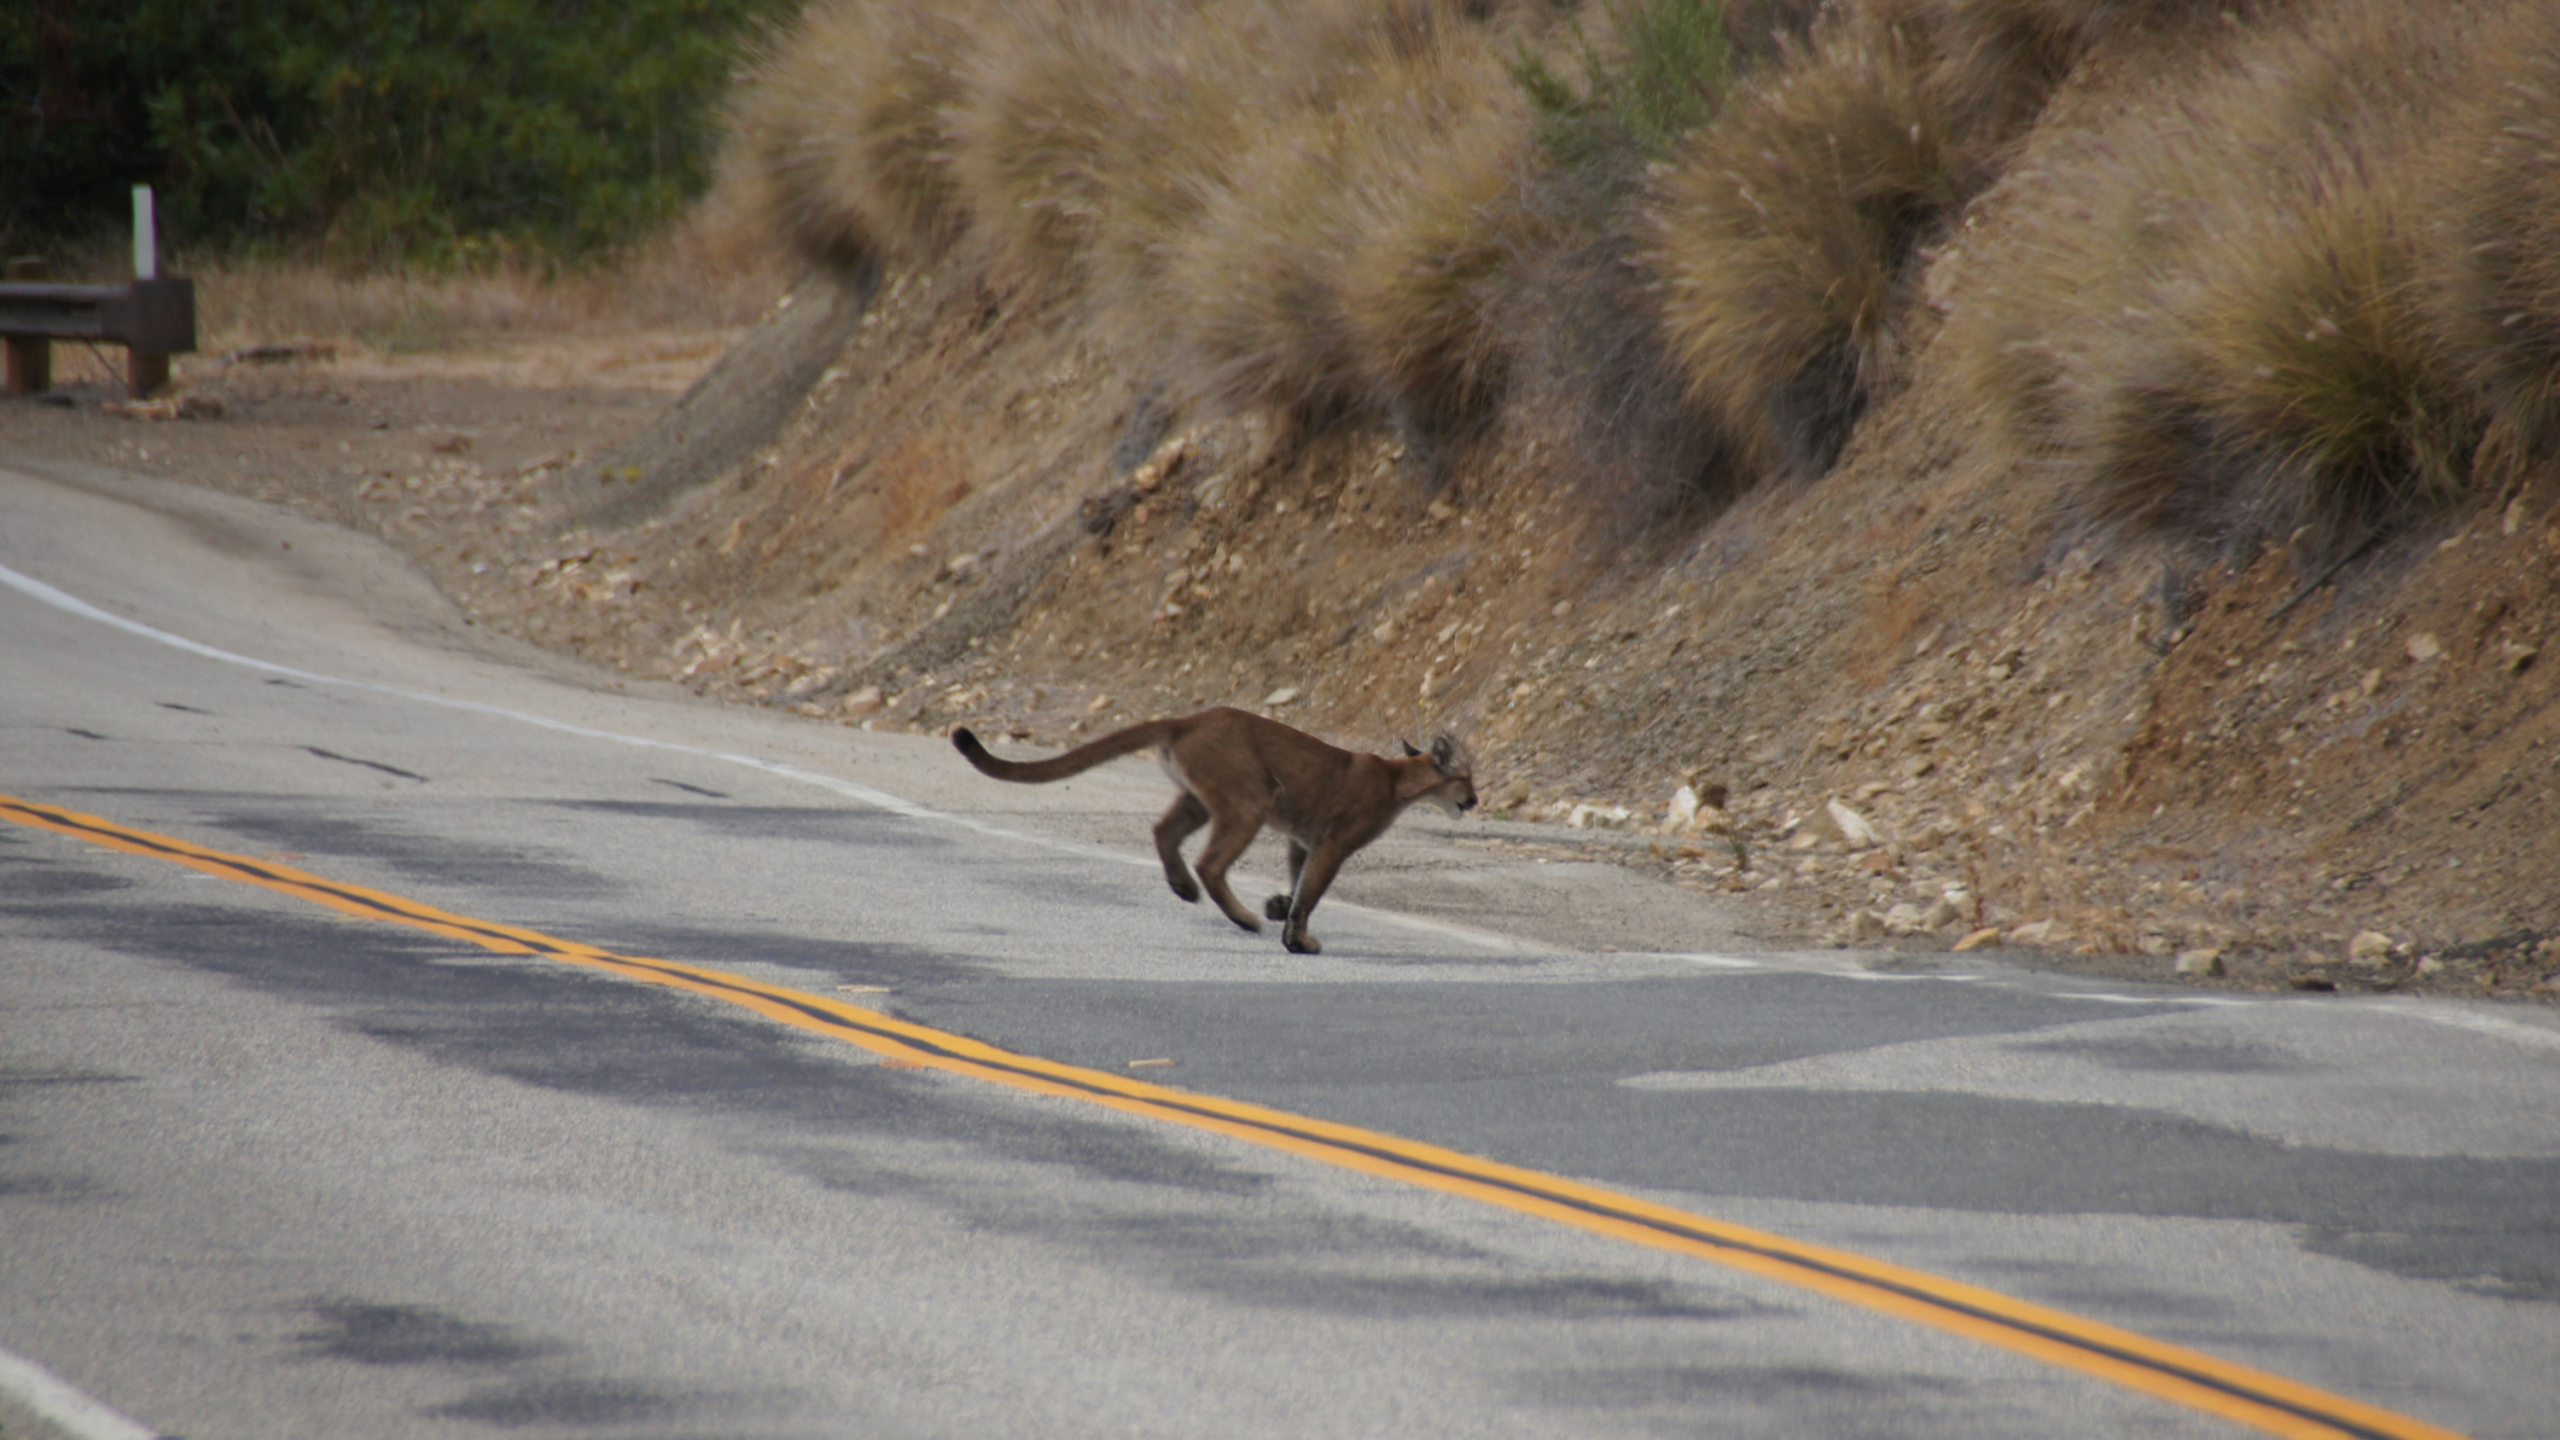 This July 10, 2013, photo shows mountain lion P-23 crossing a road in the Santa Monica Mountains. (National Park Service via AP)